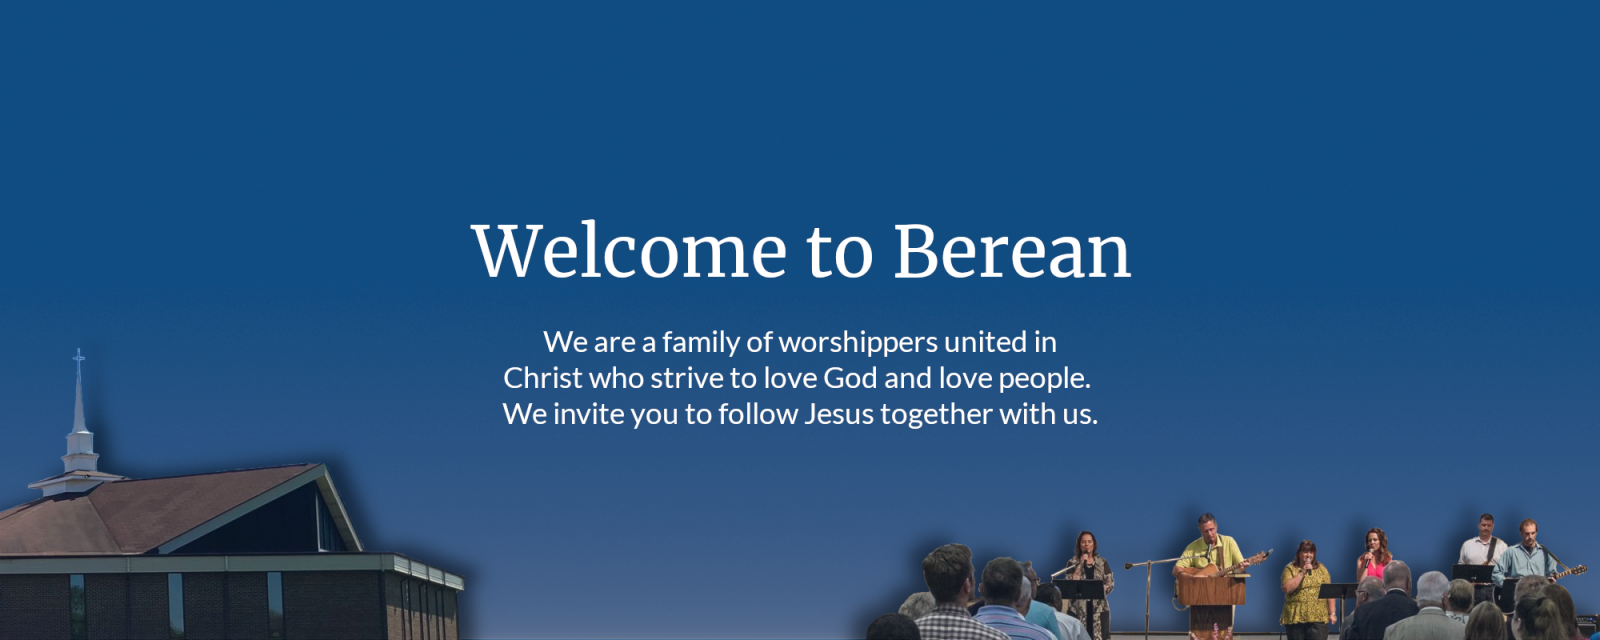 Berean_Website_Home_Image_v2_r17